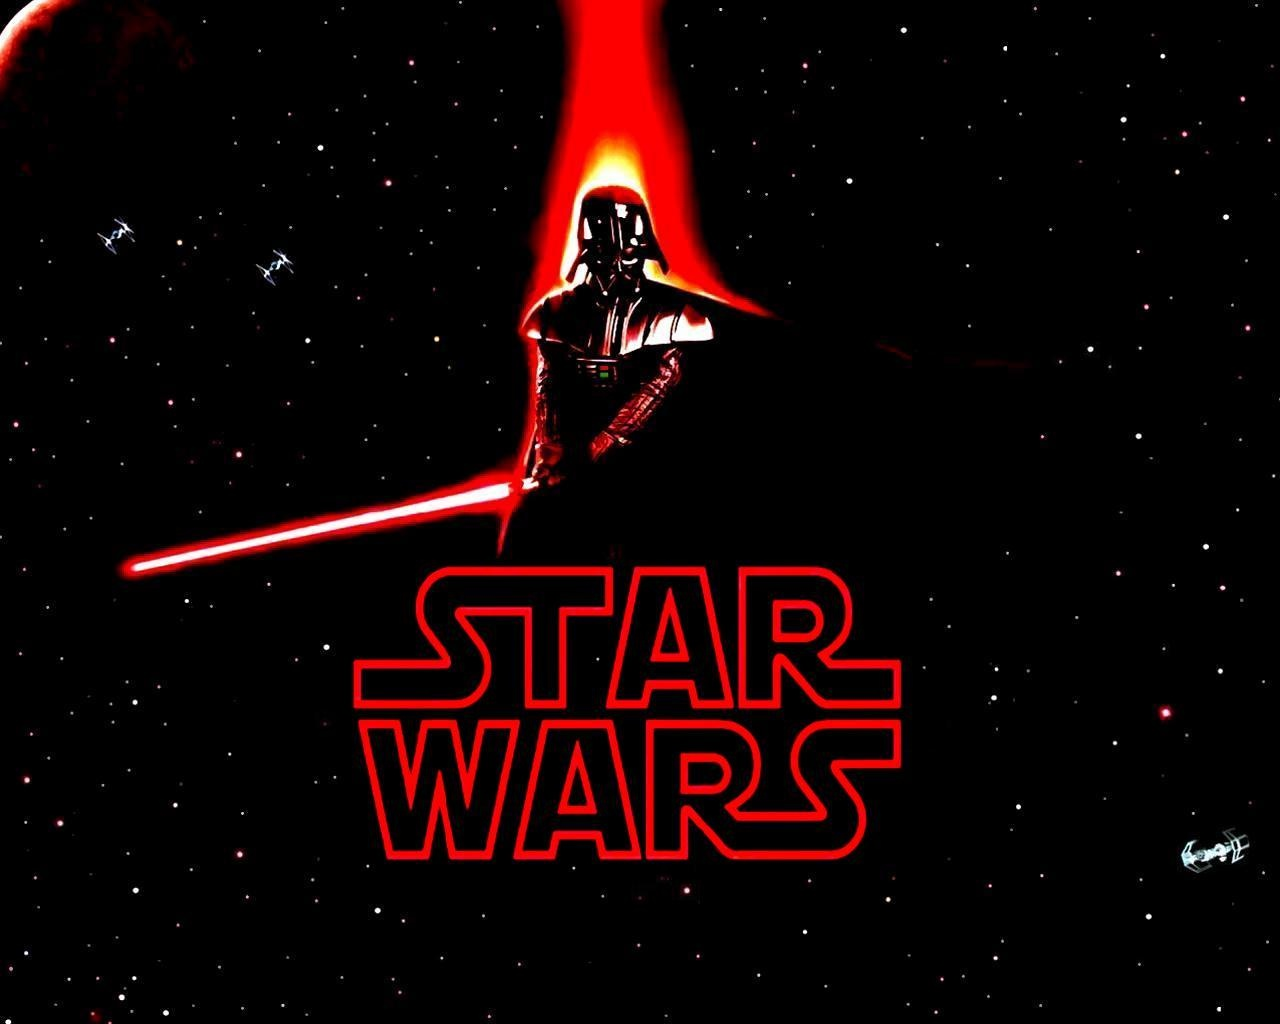 star wars live wallpaper droid ✓ hd wallpaper